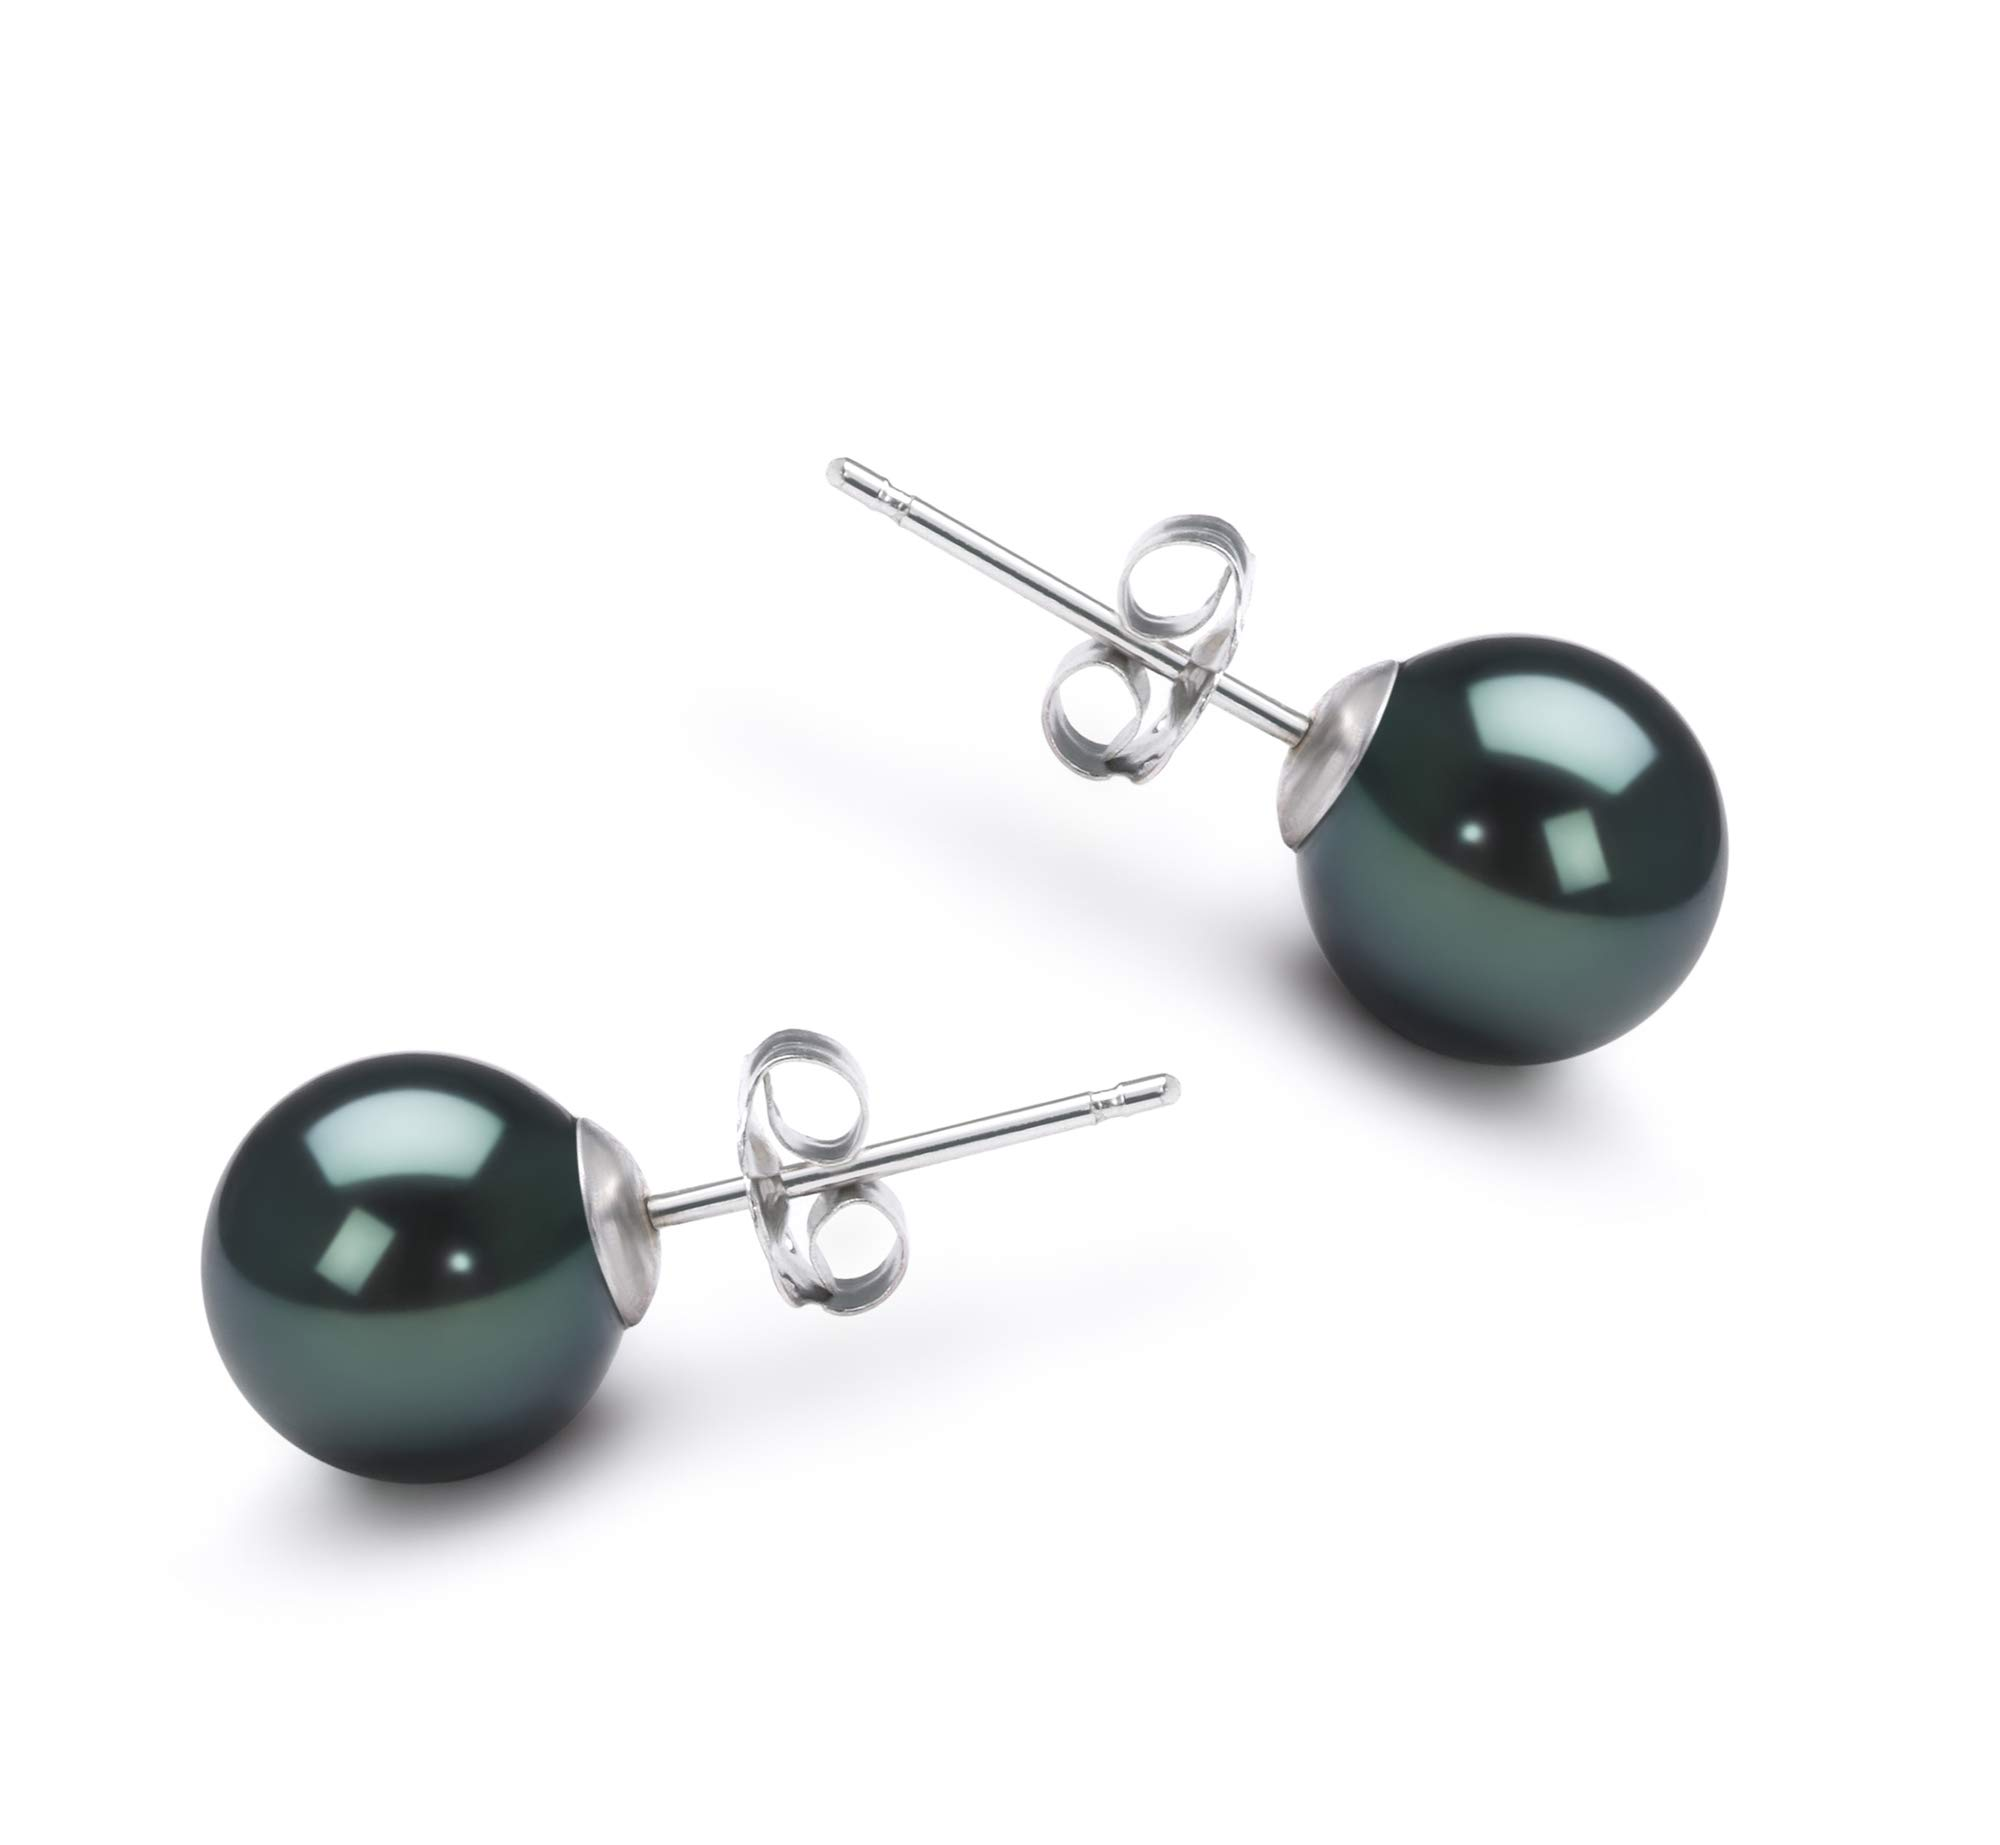 Black 7-8mm AA Quality Japanese Akoya 14K White Gold Cultured Pearl Earring Pair For Women